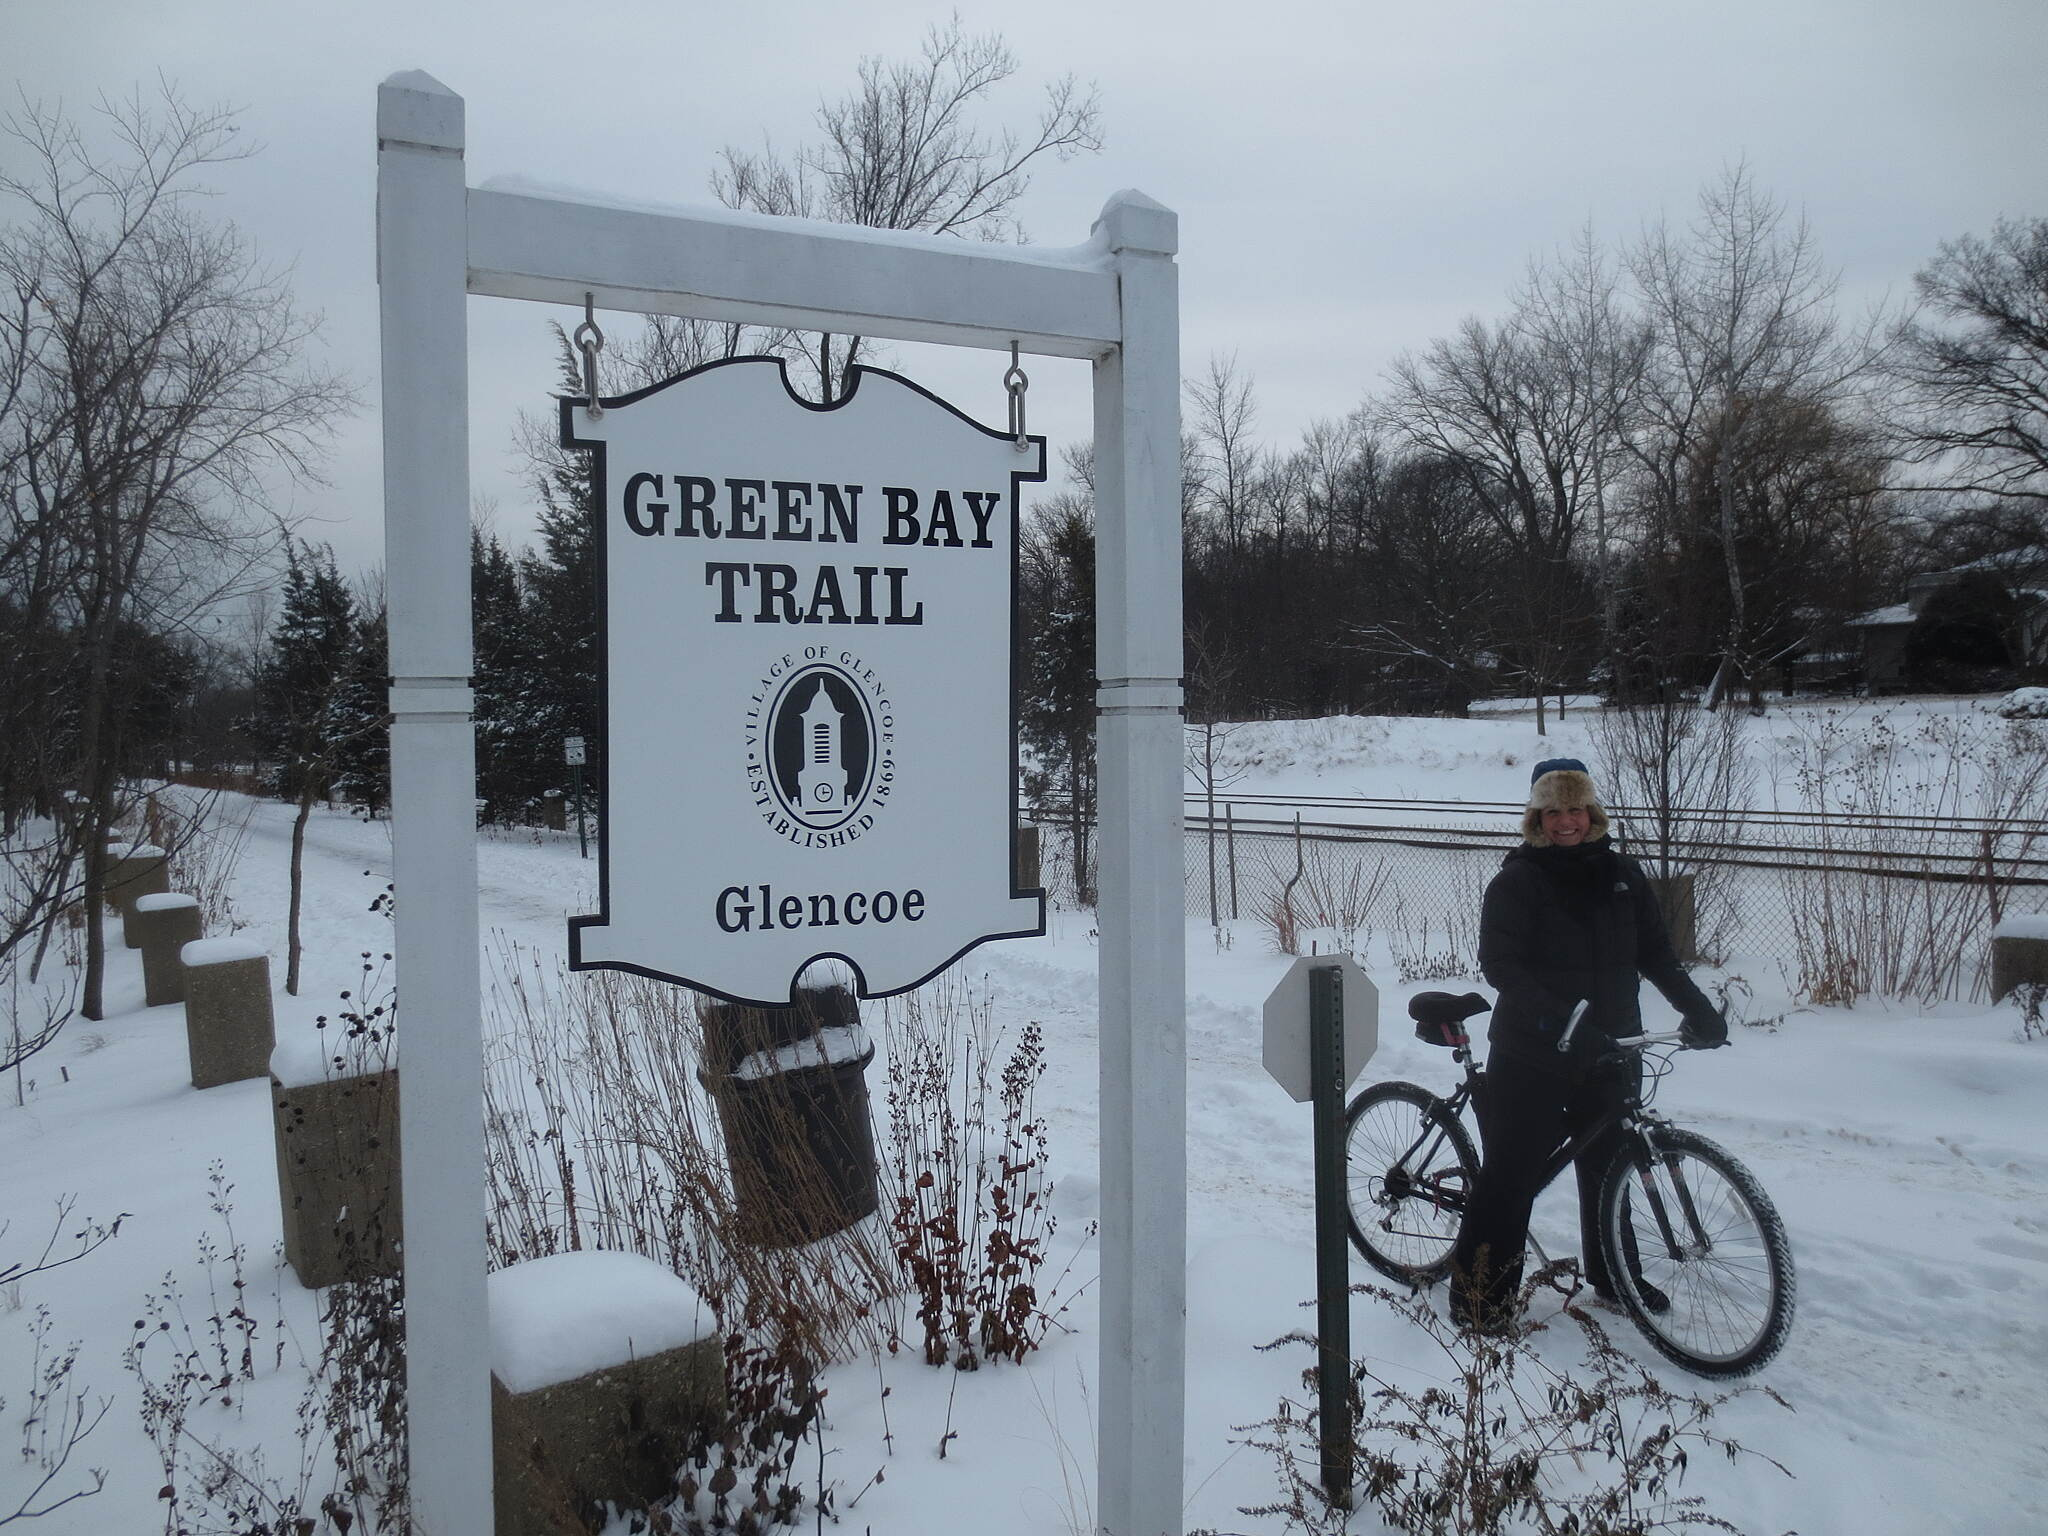 Green Bay Trail Green Bay Trail (Glencoe, IL) Despite the frigid 14° temps, Chicago's Polka Circle Bicycle Club continues to embark on weekly Sunday rides. Pictured here on the Green Bay Trail where any number of on-road side trips provide for beachfront views of the lake.